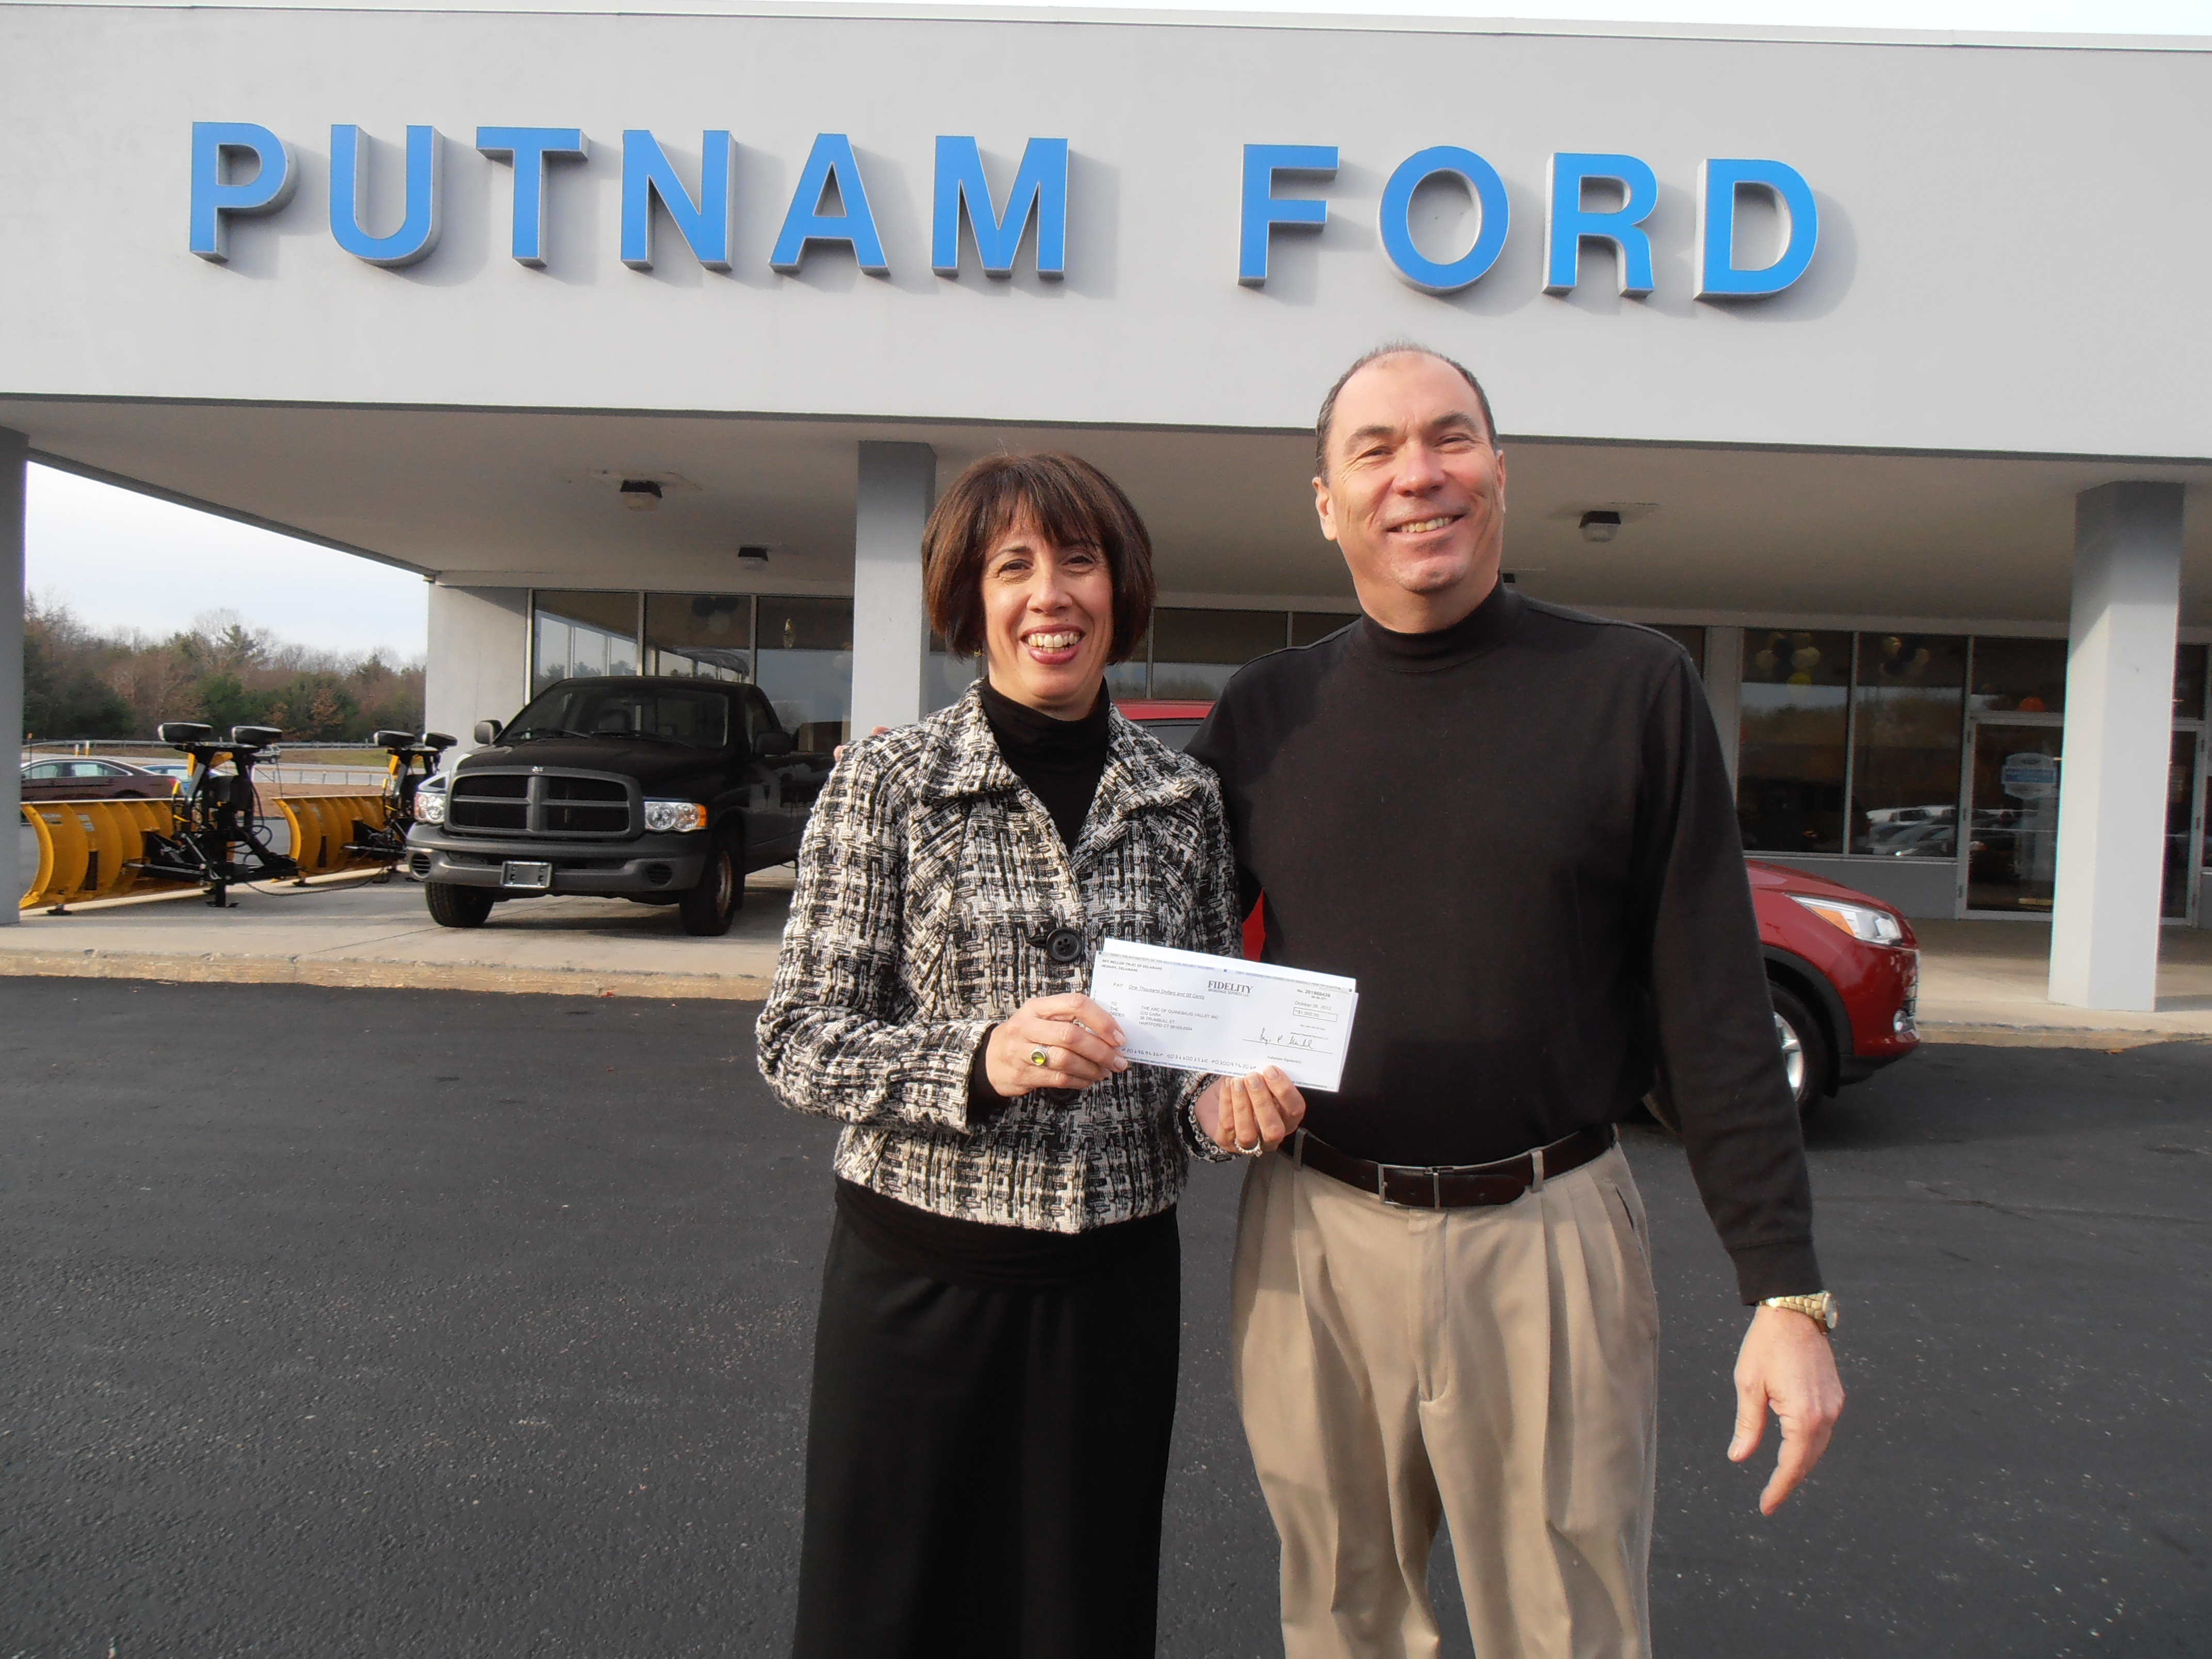 Putnam Ford The Arc Quinebaug Valley donation